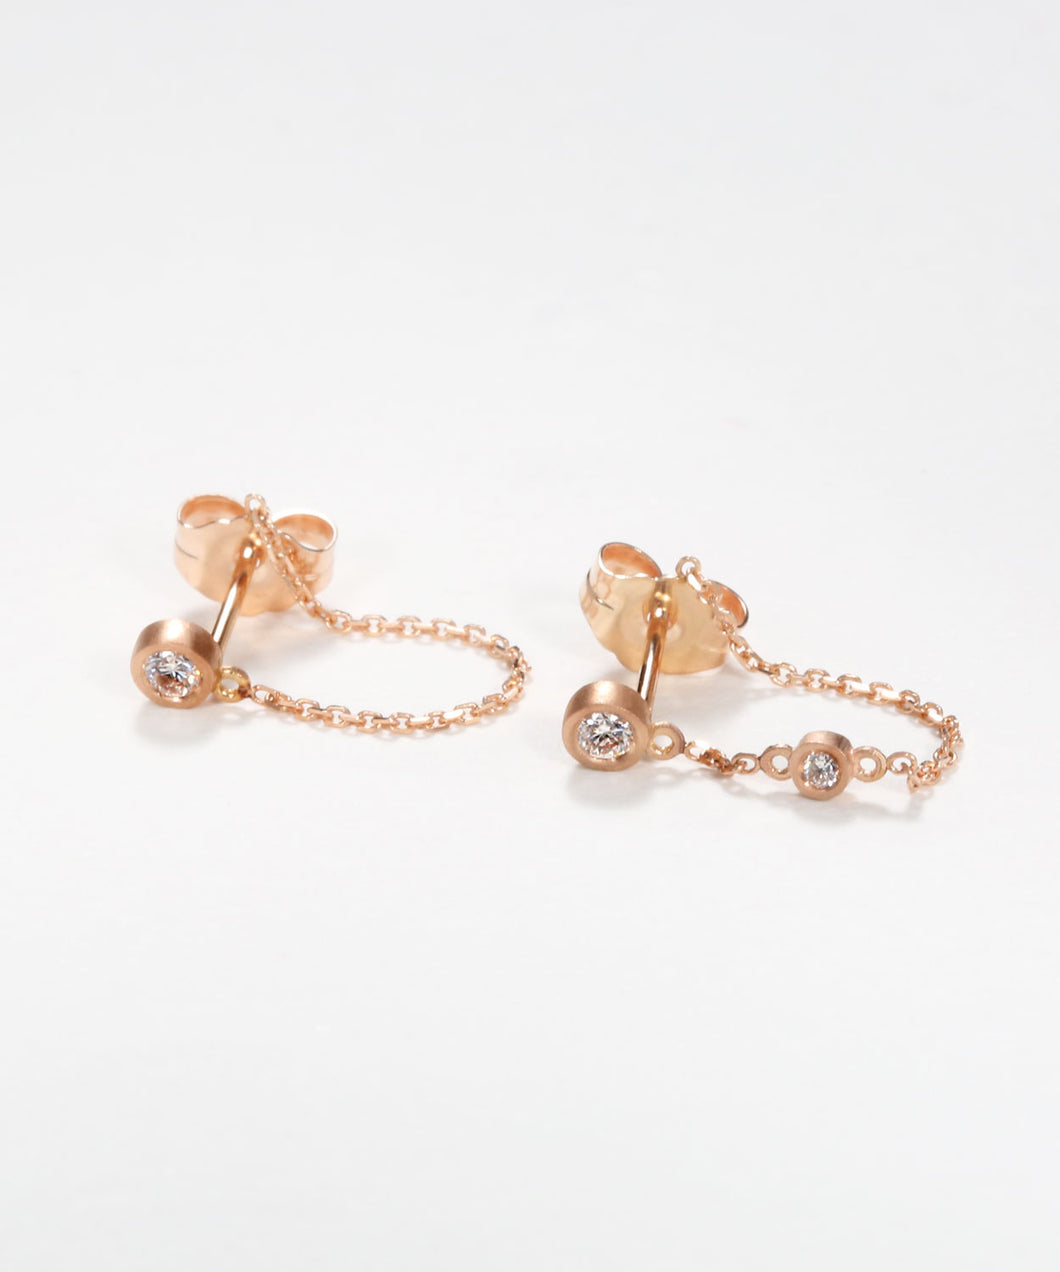 Tiny Diamond Chained Earrings